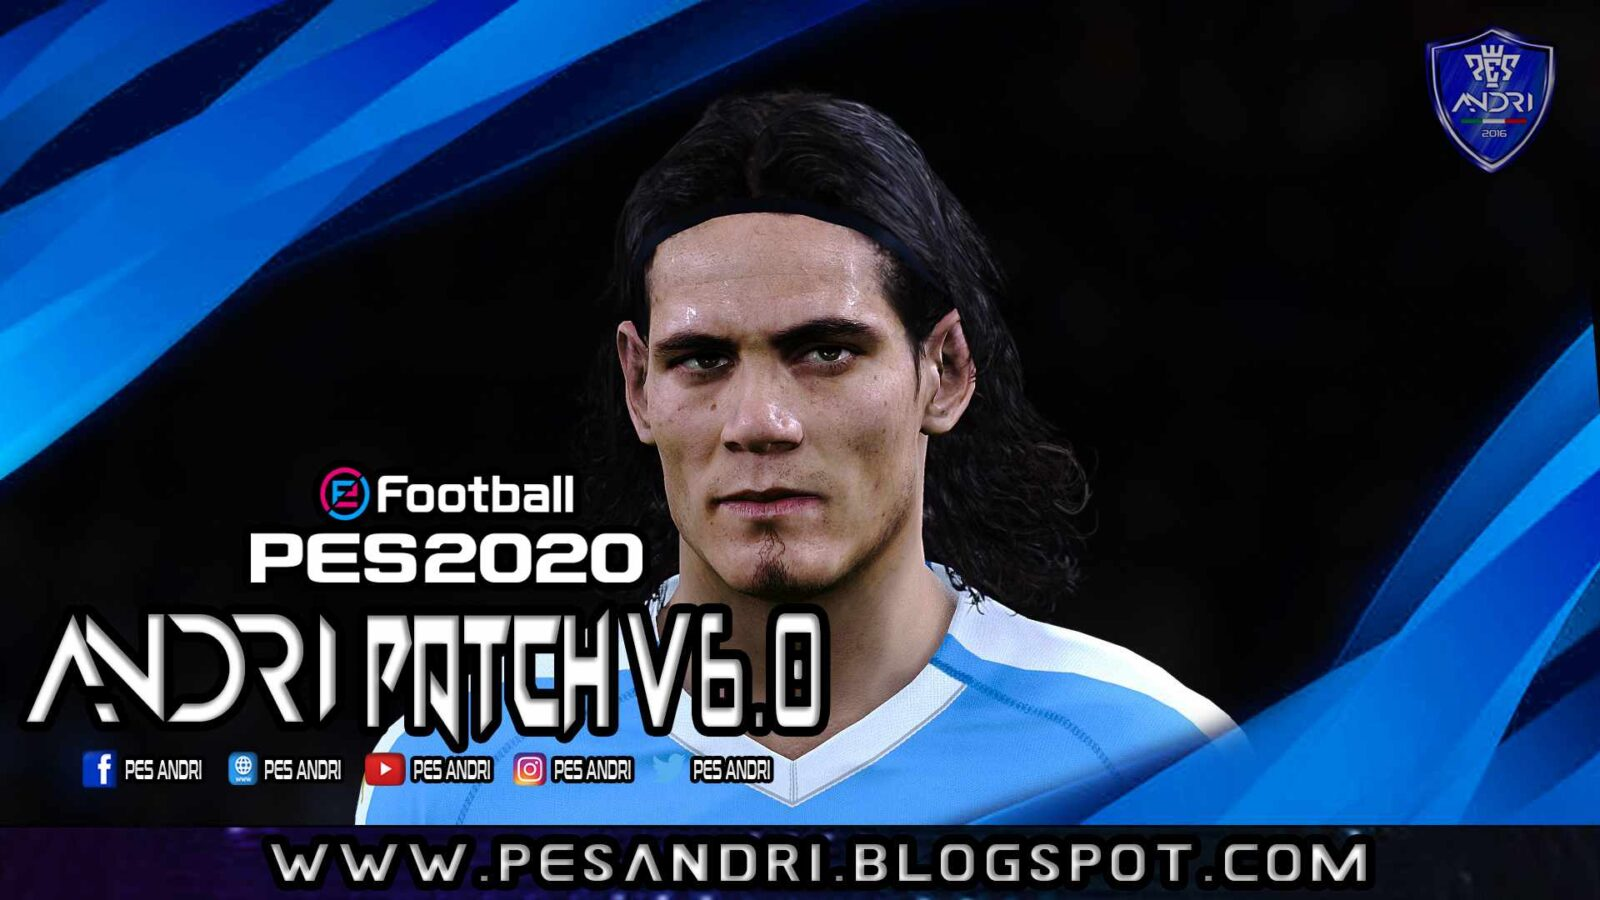 دانلود پچ Andri Patch 6.0 AIO برای PES 2020